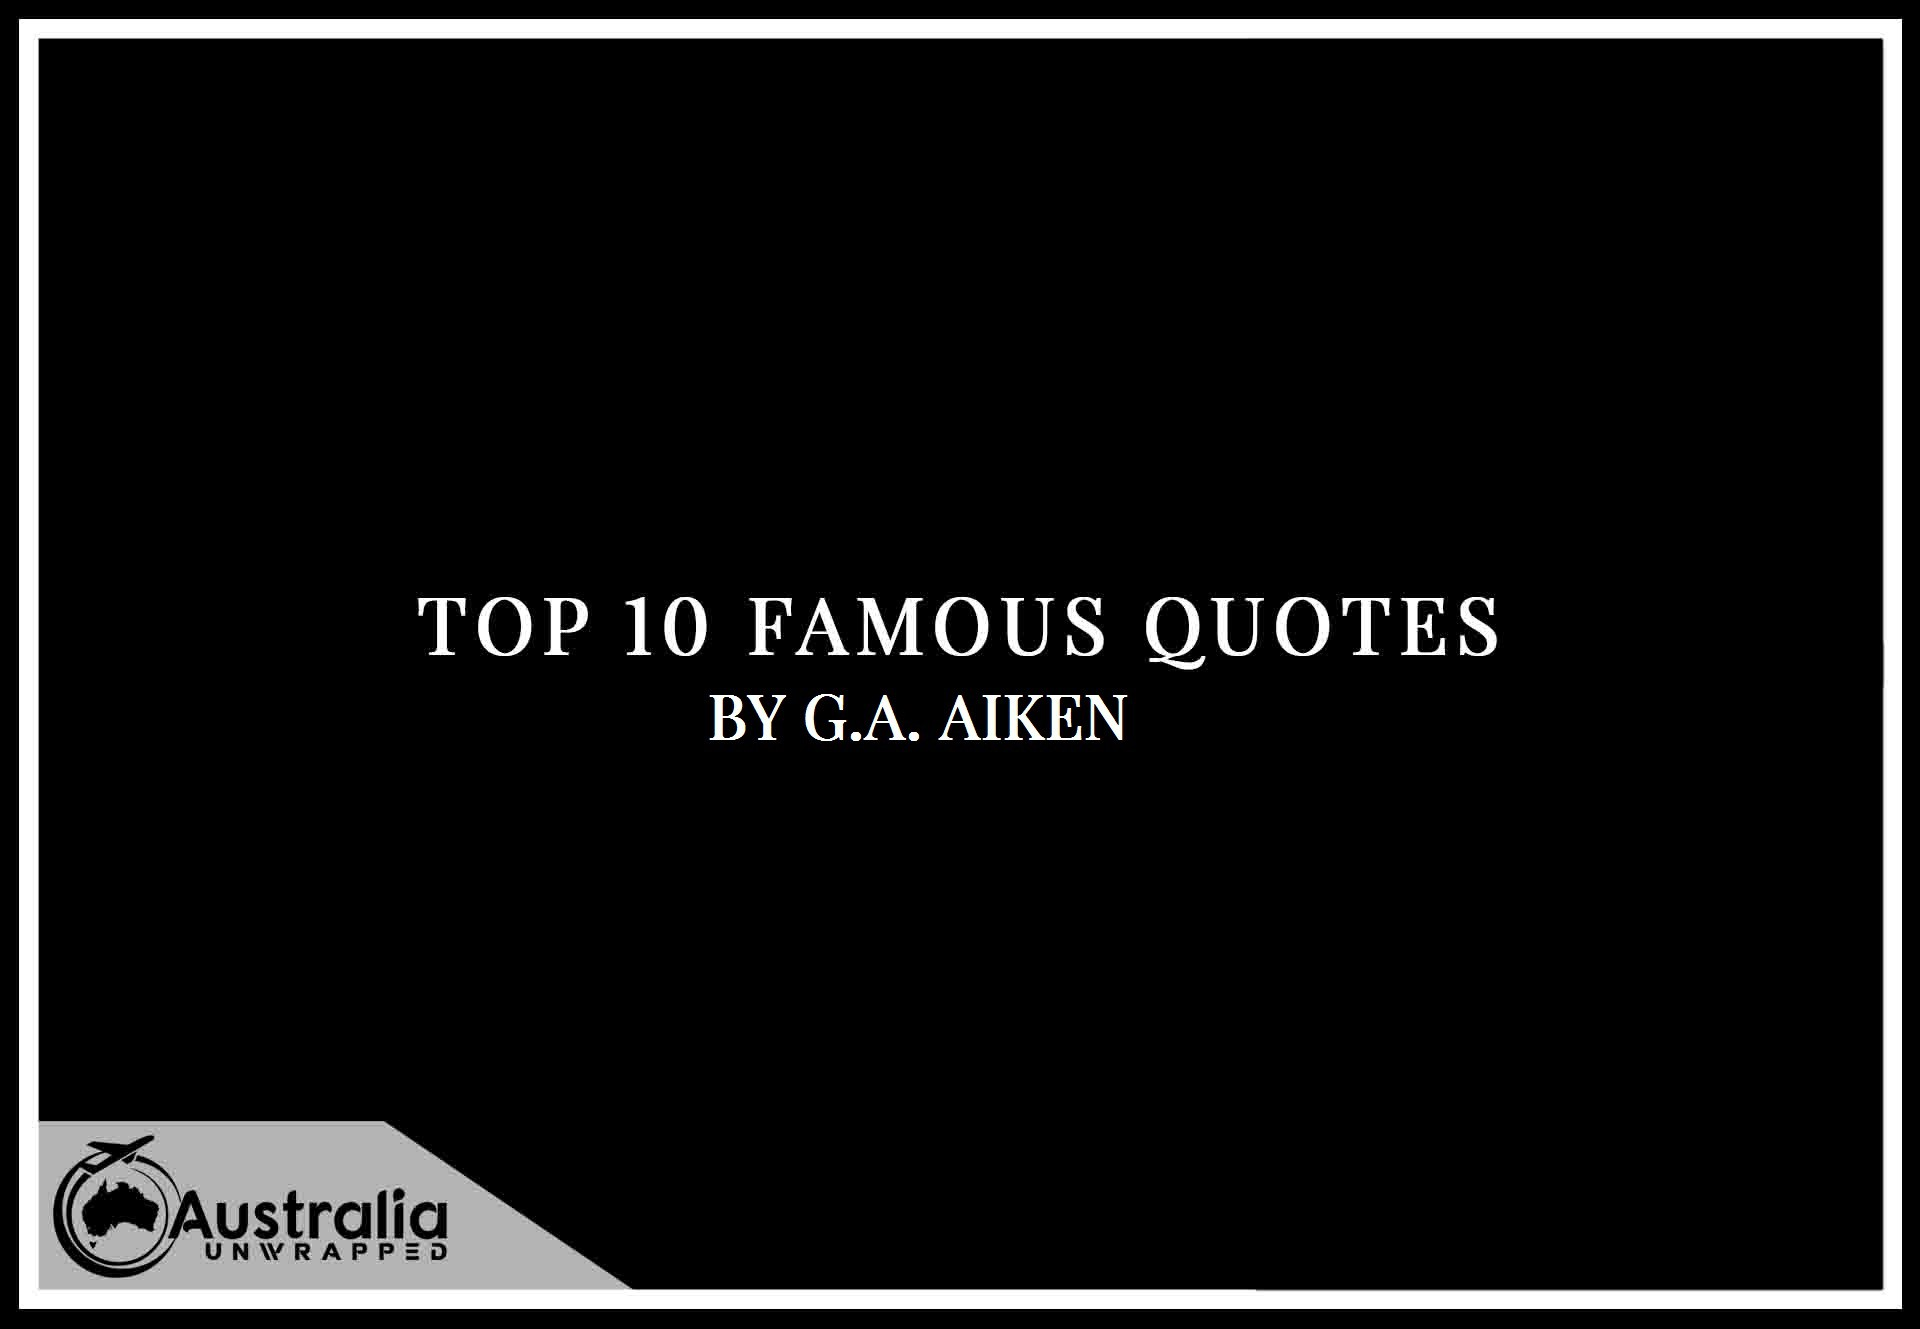 G.A. Aiken's Top 10 Popular and Famous Quotes